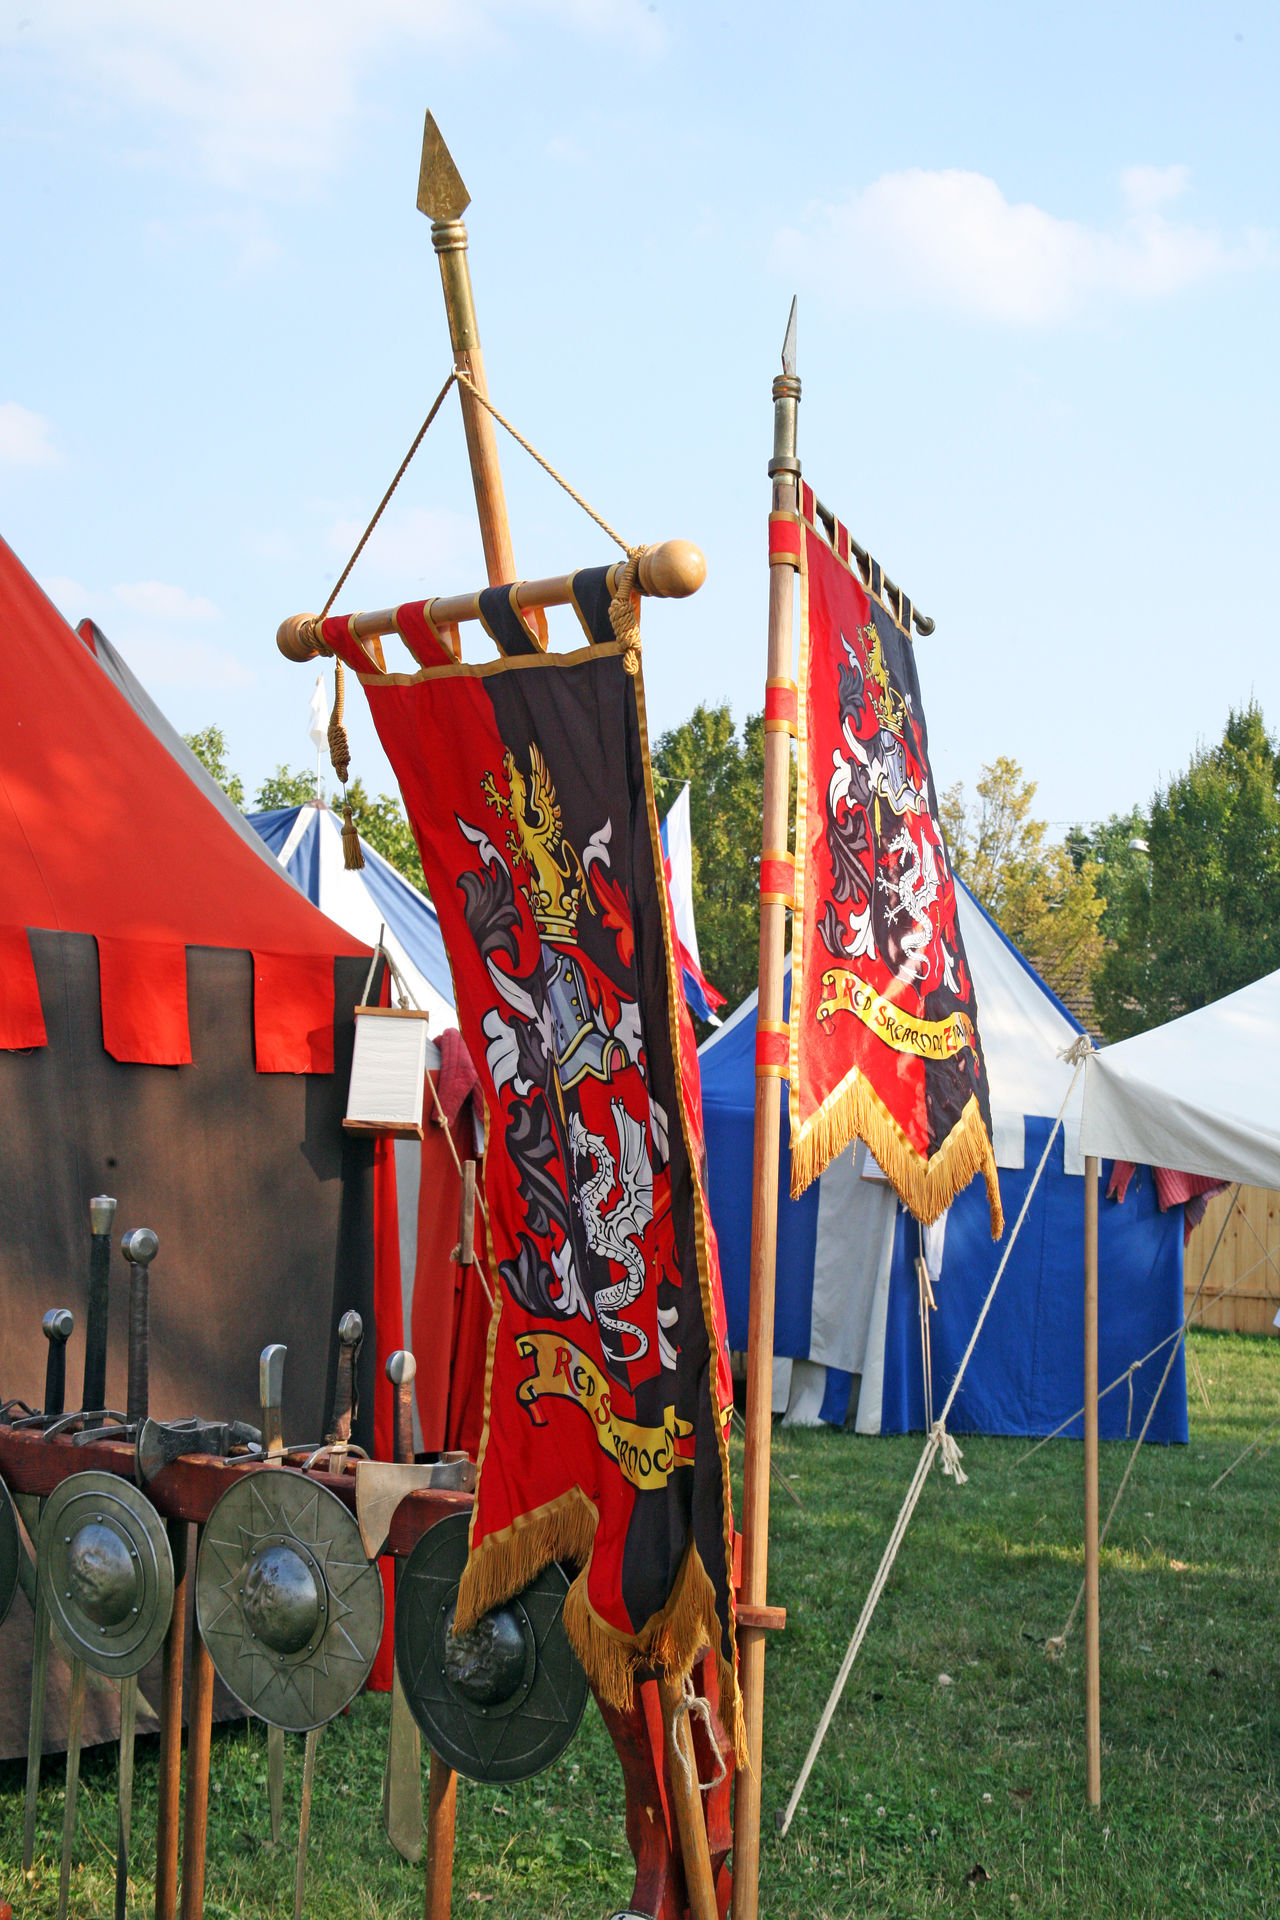 Renaissance Festival,Koprivnica,Croatia,Europe, 2016.,flags and anthems Anthems Colourful Croatia Day Design Entertainment Eu Europe Fair Flags Koprivnica Medieval Outdoors Renaissance Festival Show Summer